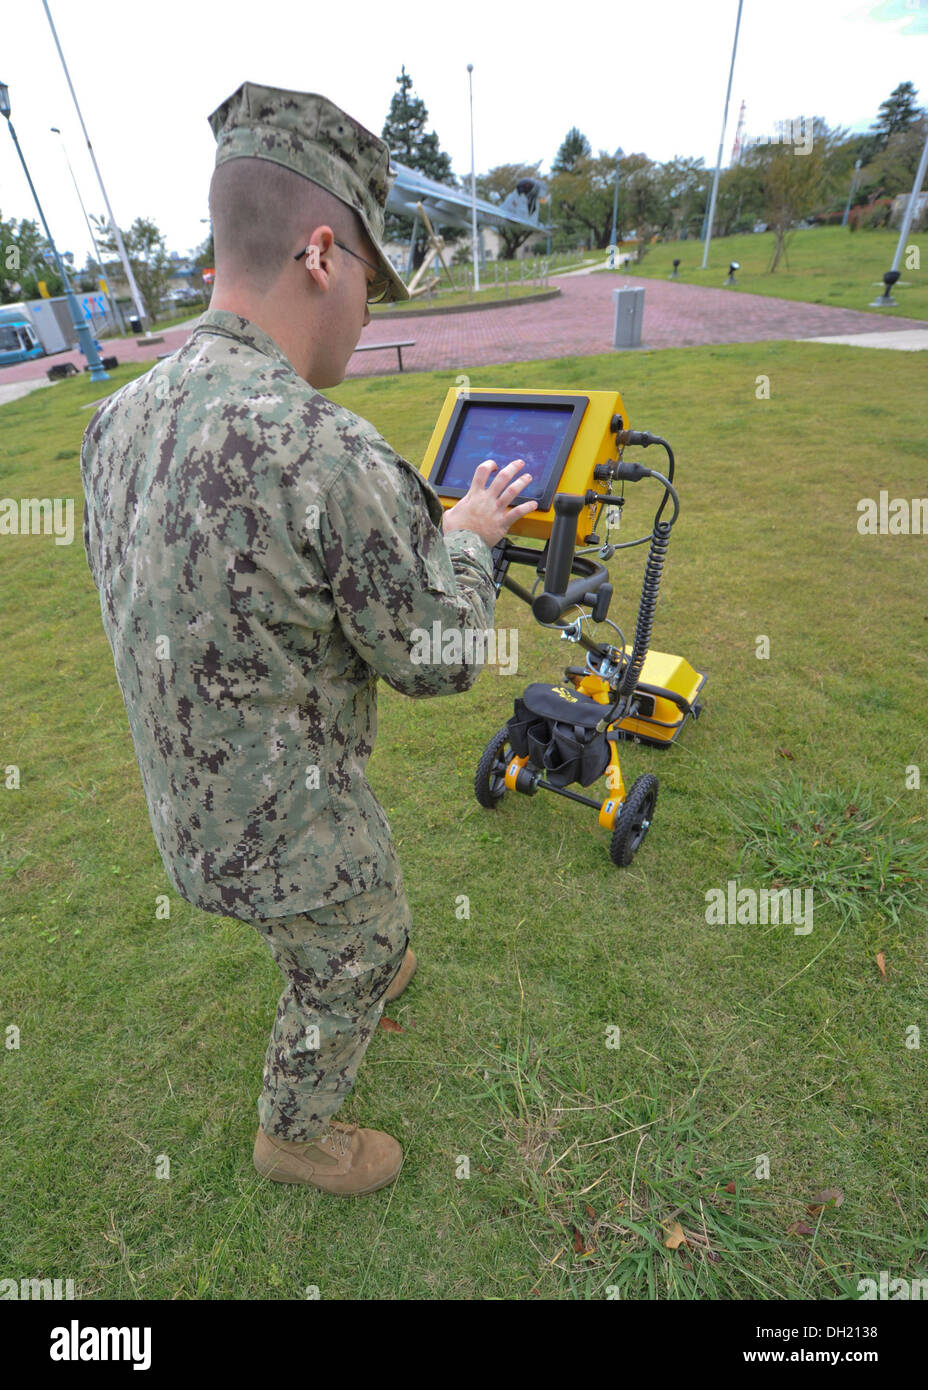 Builder Constructionman Kodi Mahood, of Public Works Atsugi, tests out a ground-penetrating radar (GPR) at Alliance Park on Naval Air Facility Atsugi. The GPR uses radar pulses to image the subsurface allowing the Seabees to see pipes and other obstacles - Stock Image